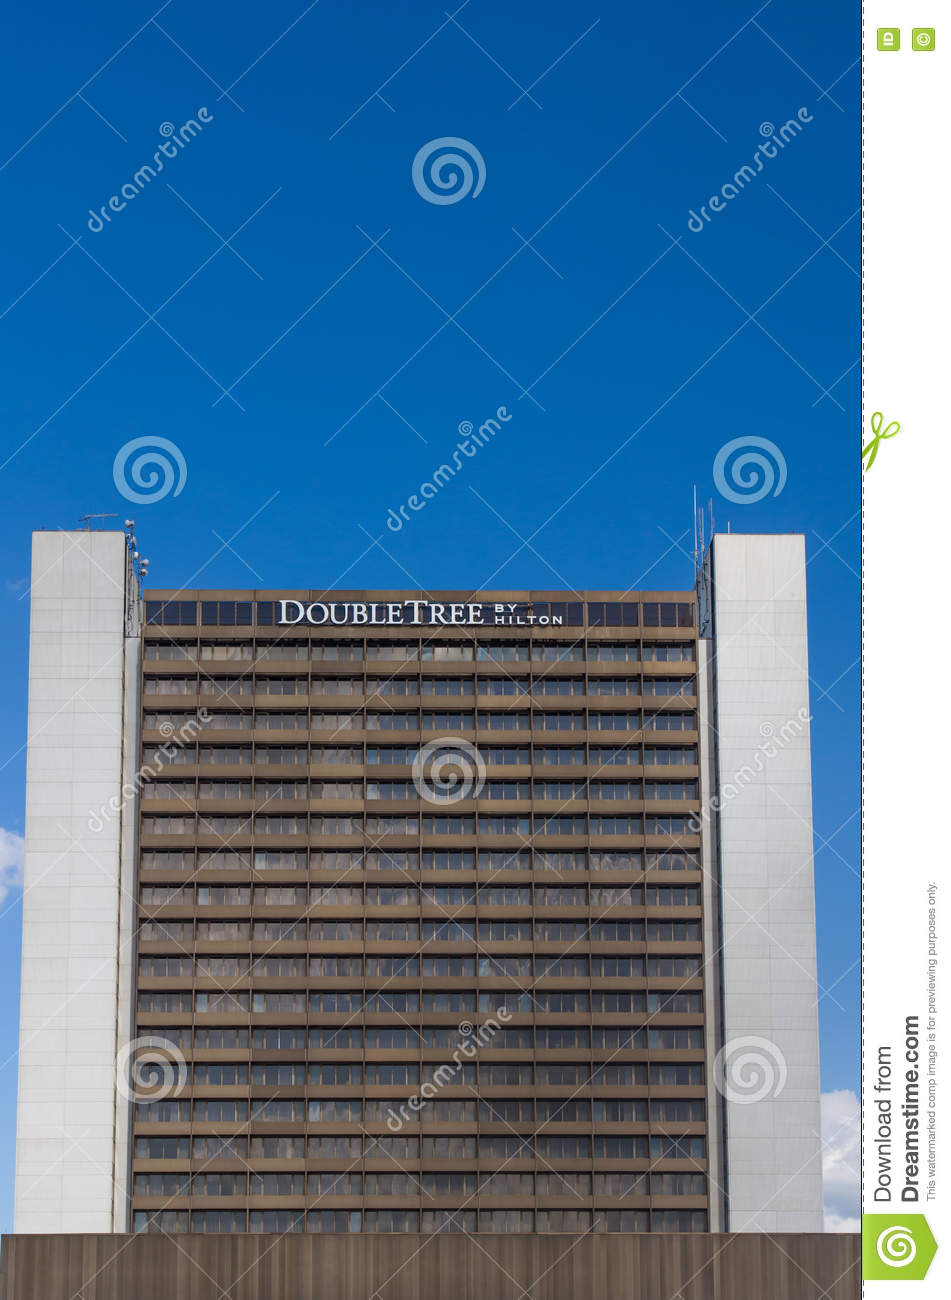 Double Tree By Hilton Hotel Editorial Stock Photo Image Of Chain